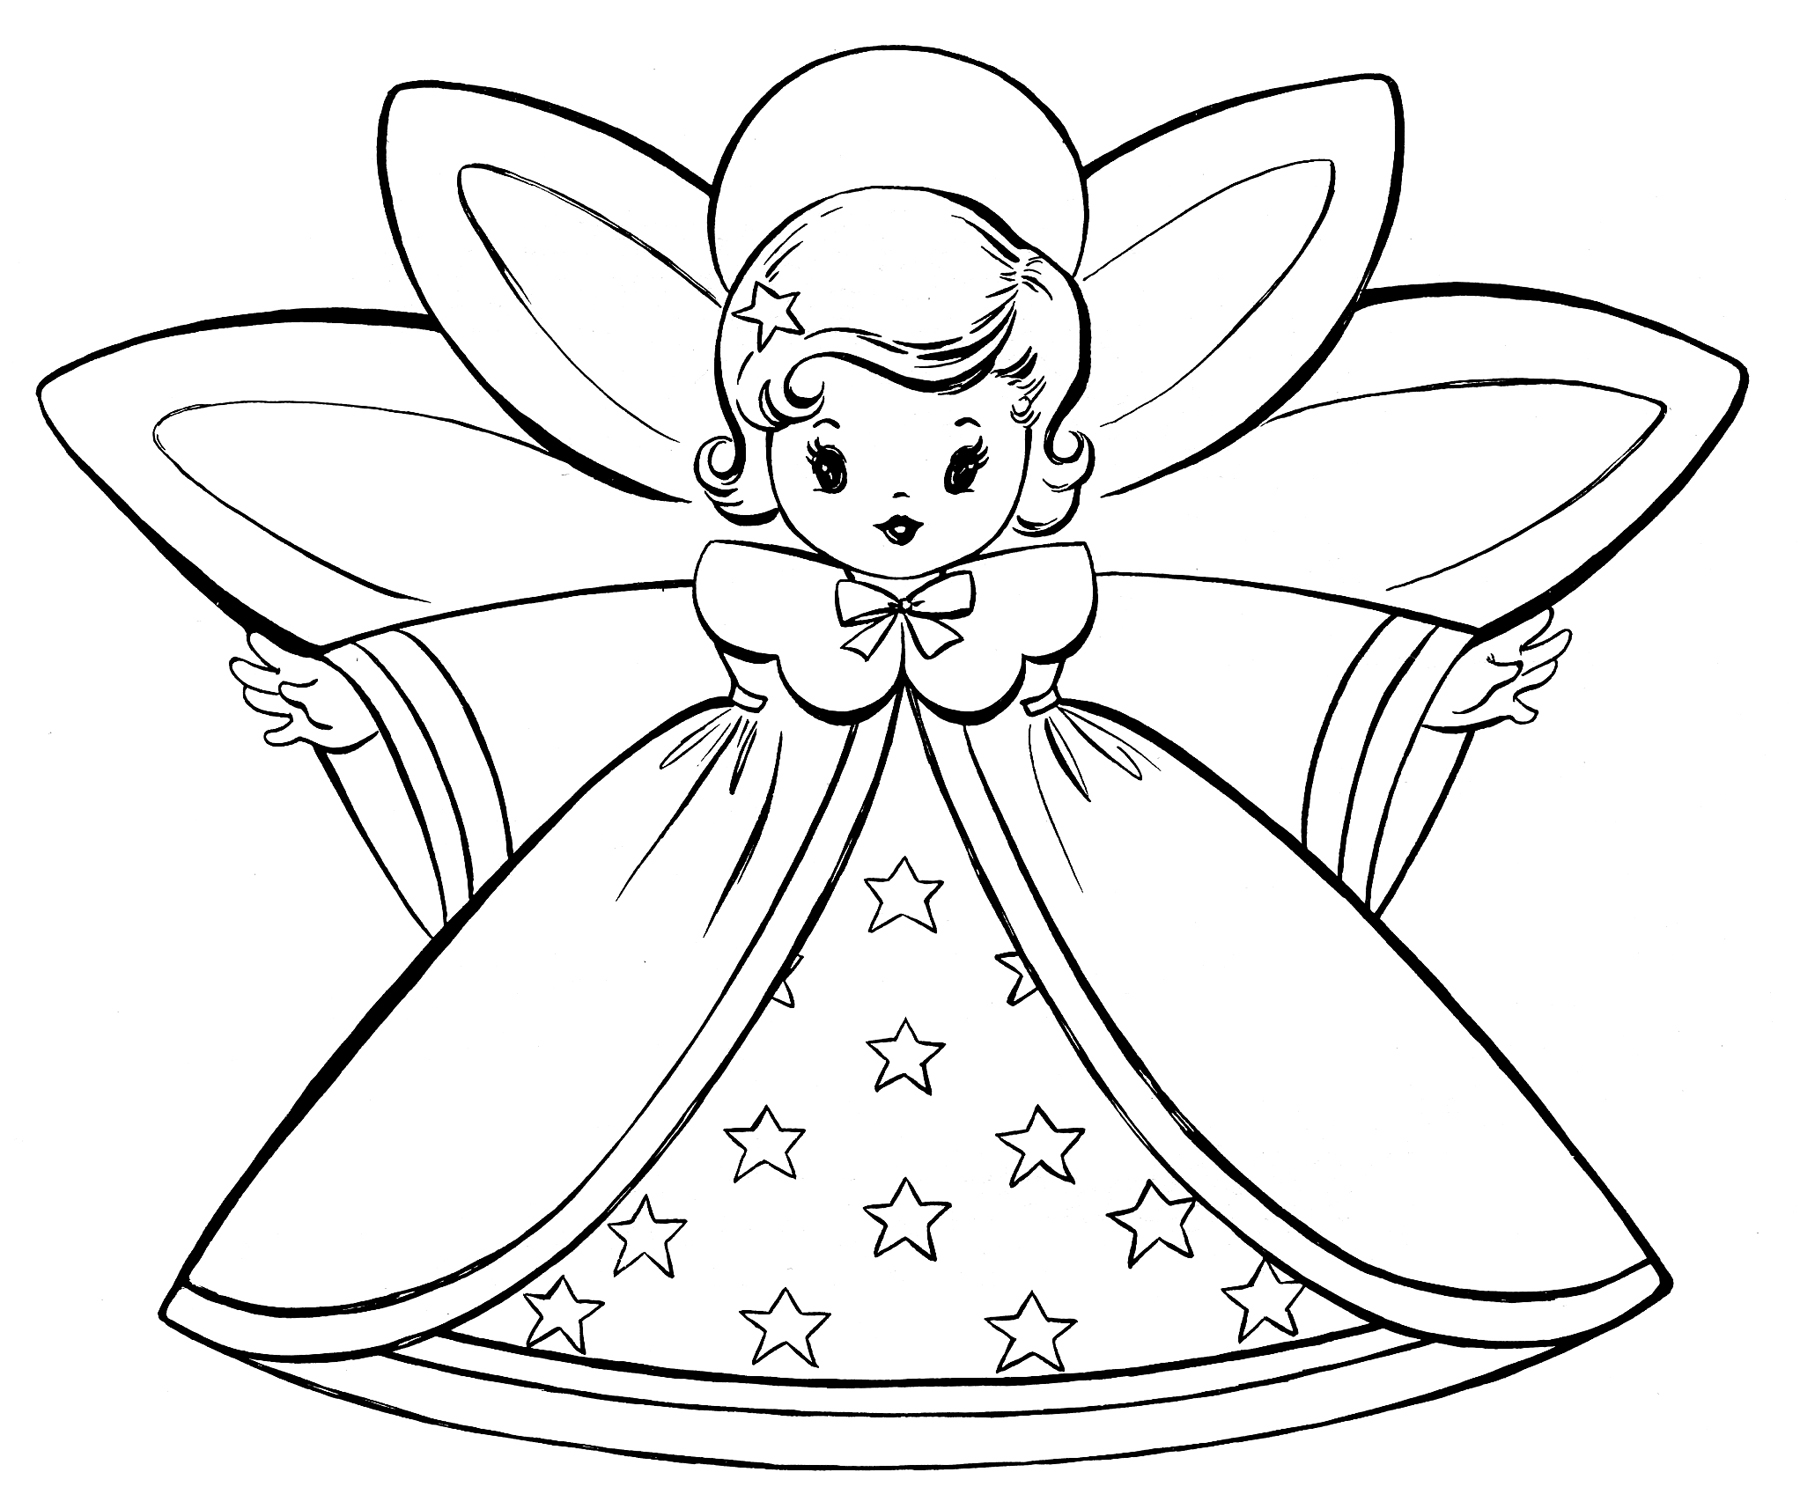 Coloring pages for christmas - Free Christmas Coloring Pages